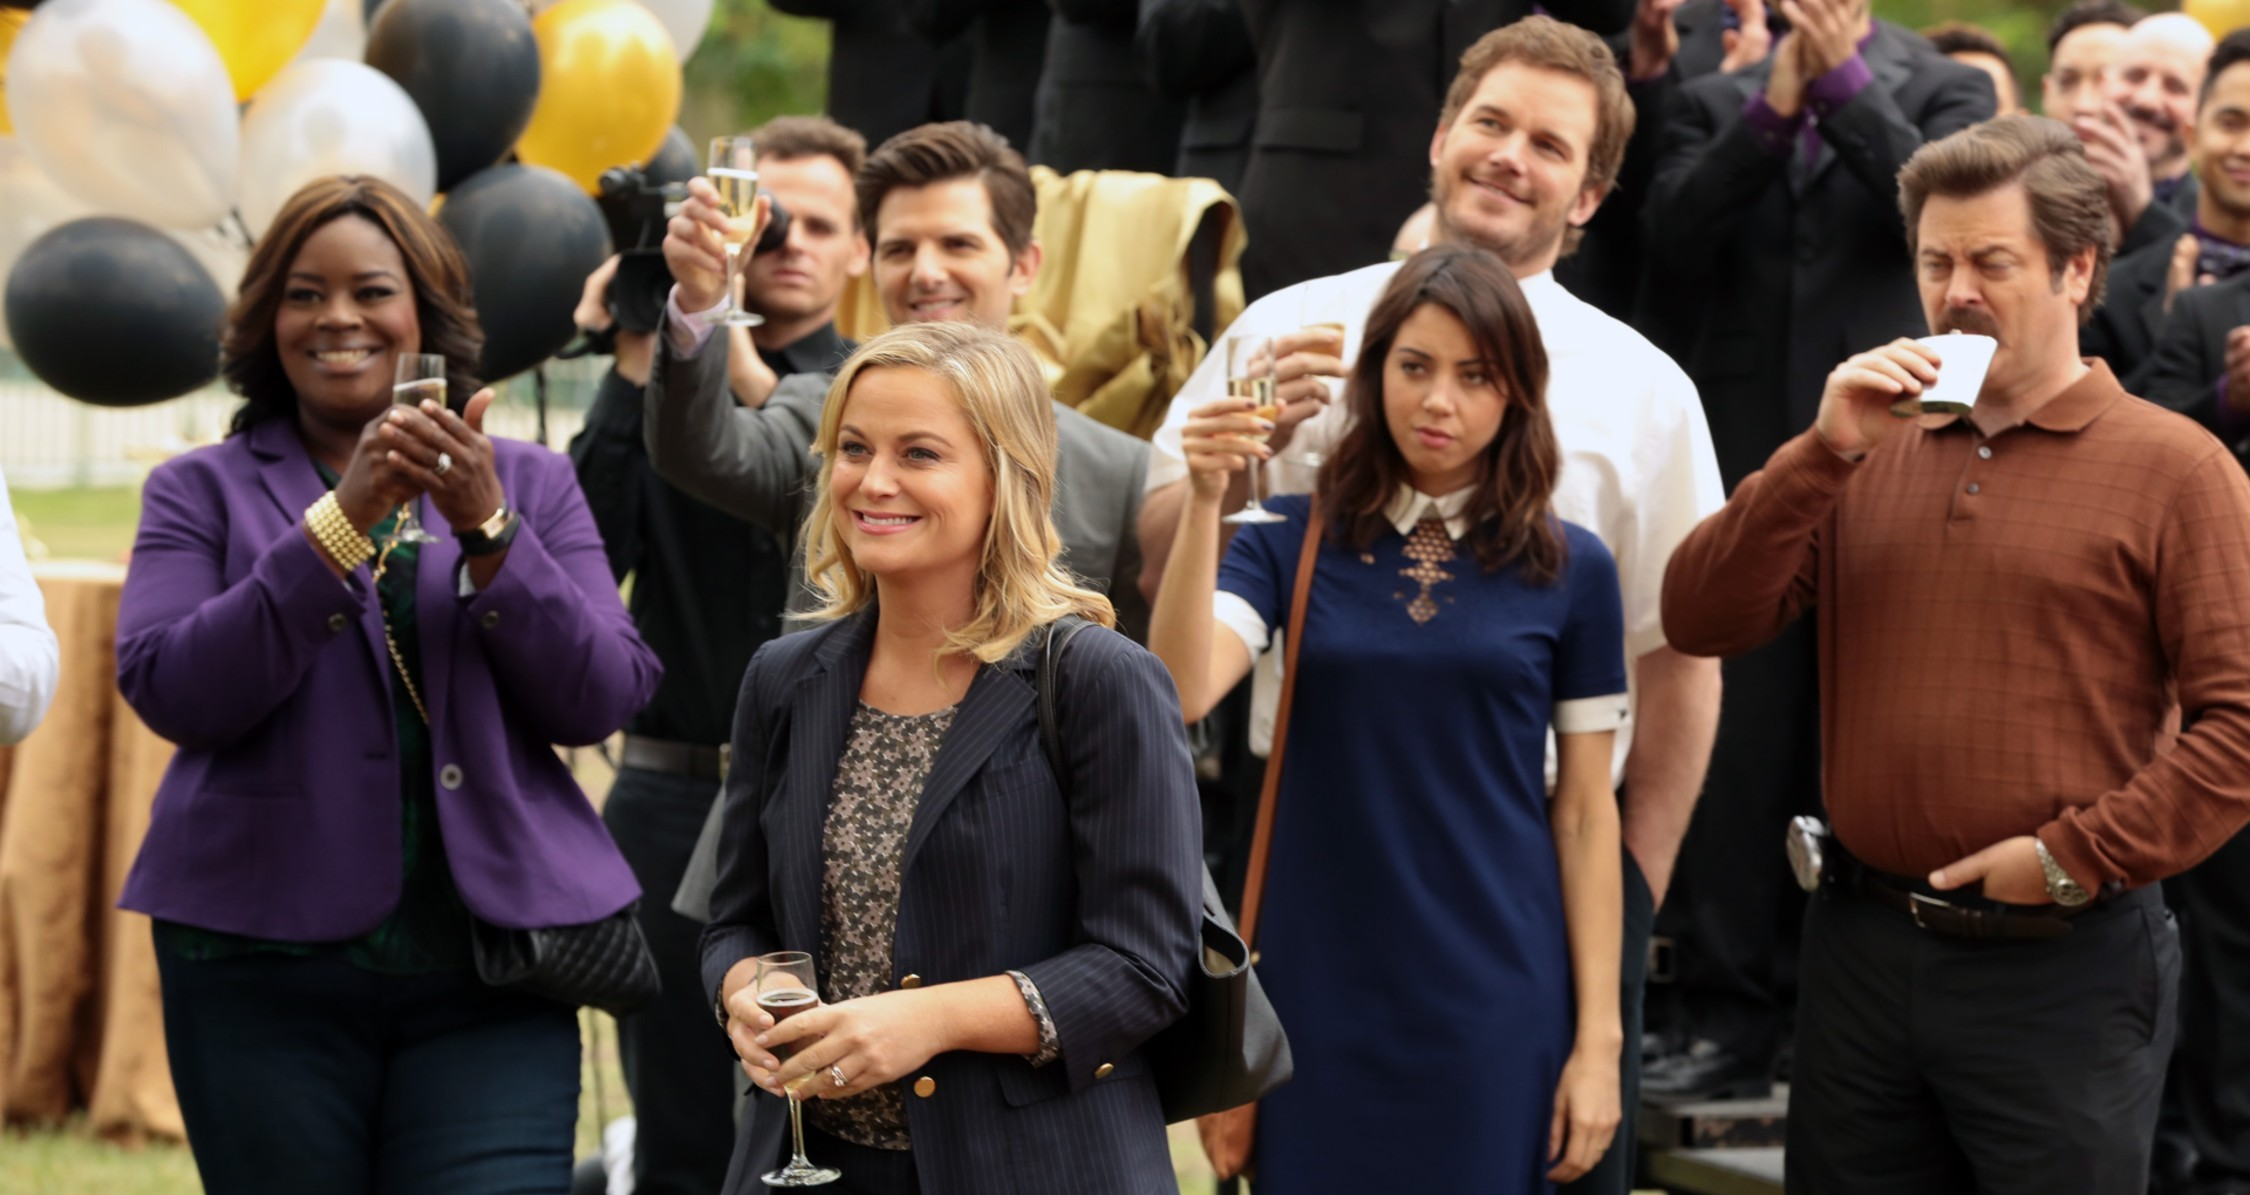 The Parks and Recreation cast